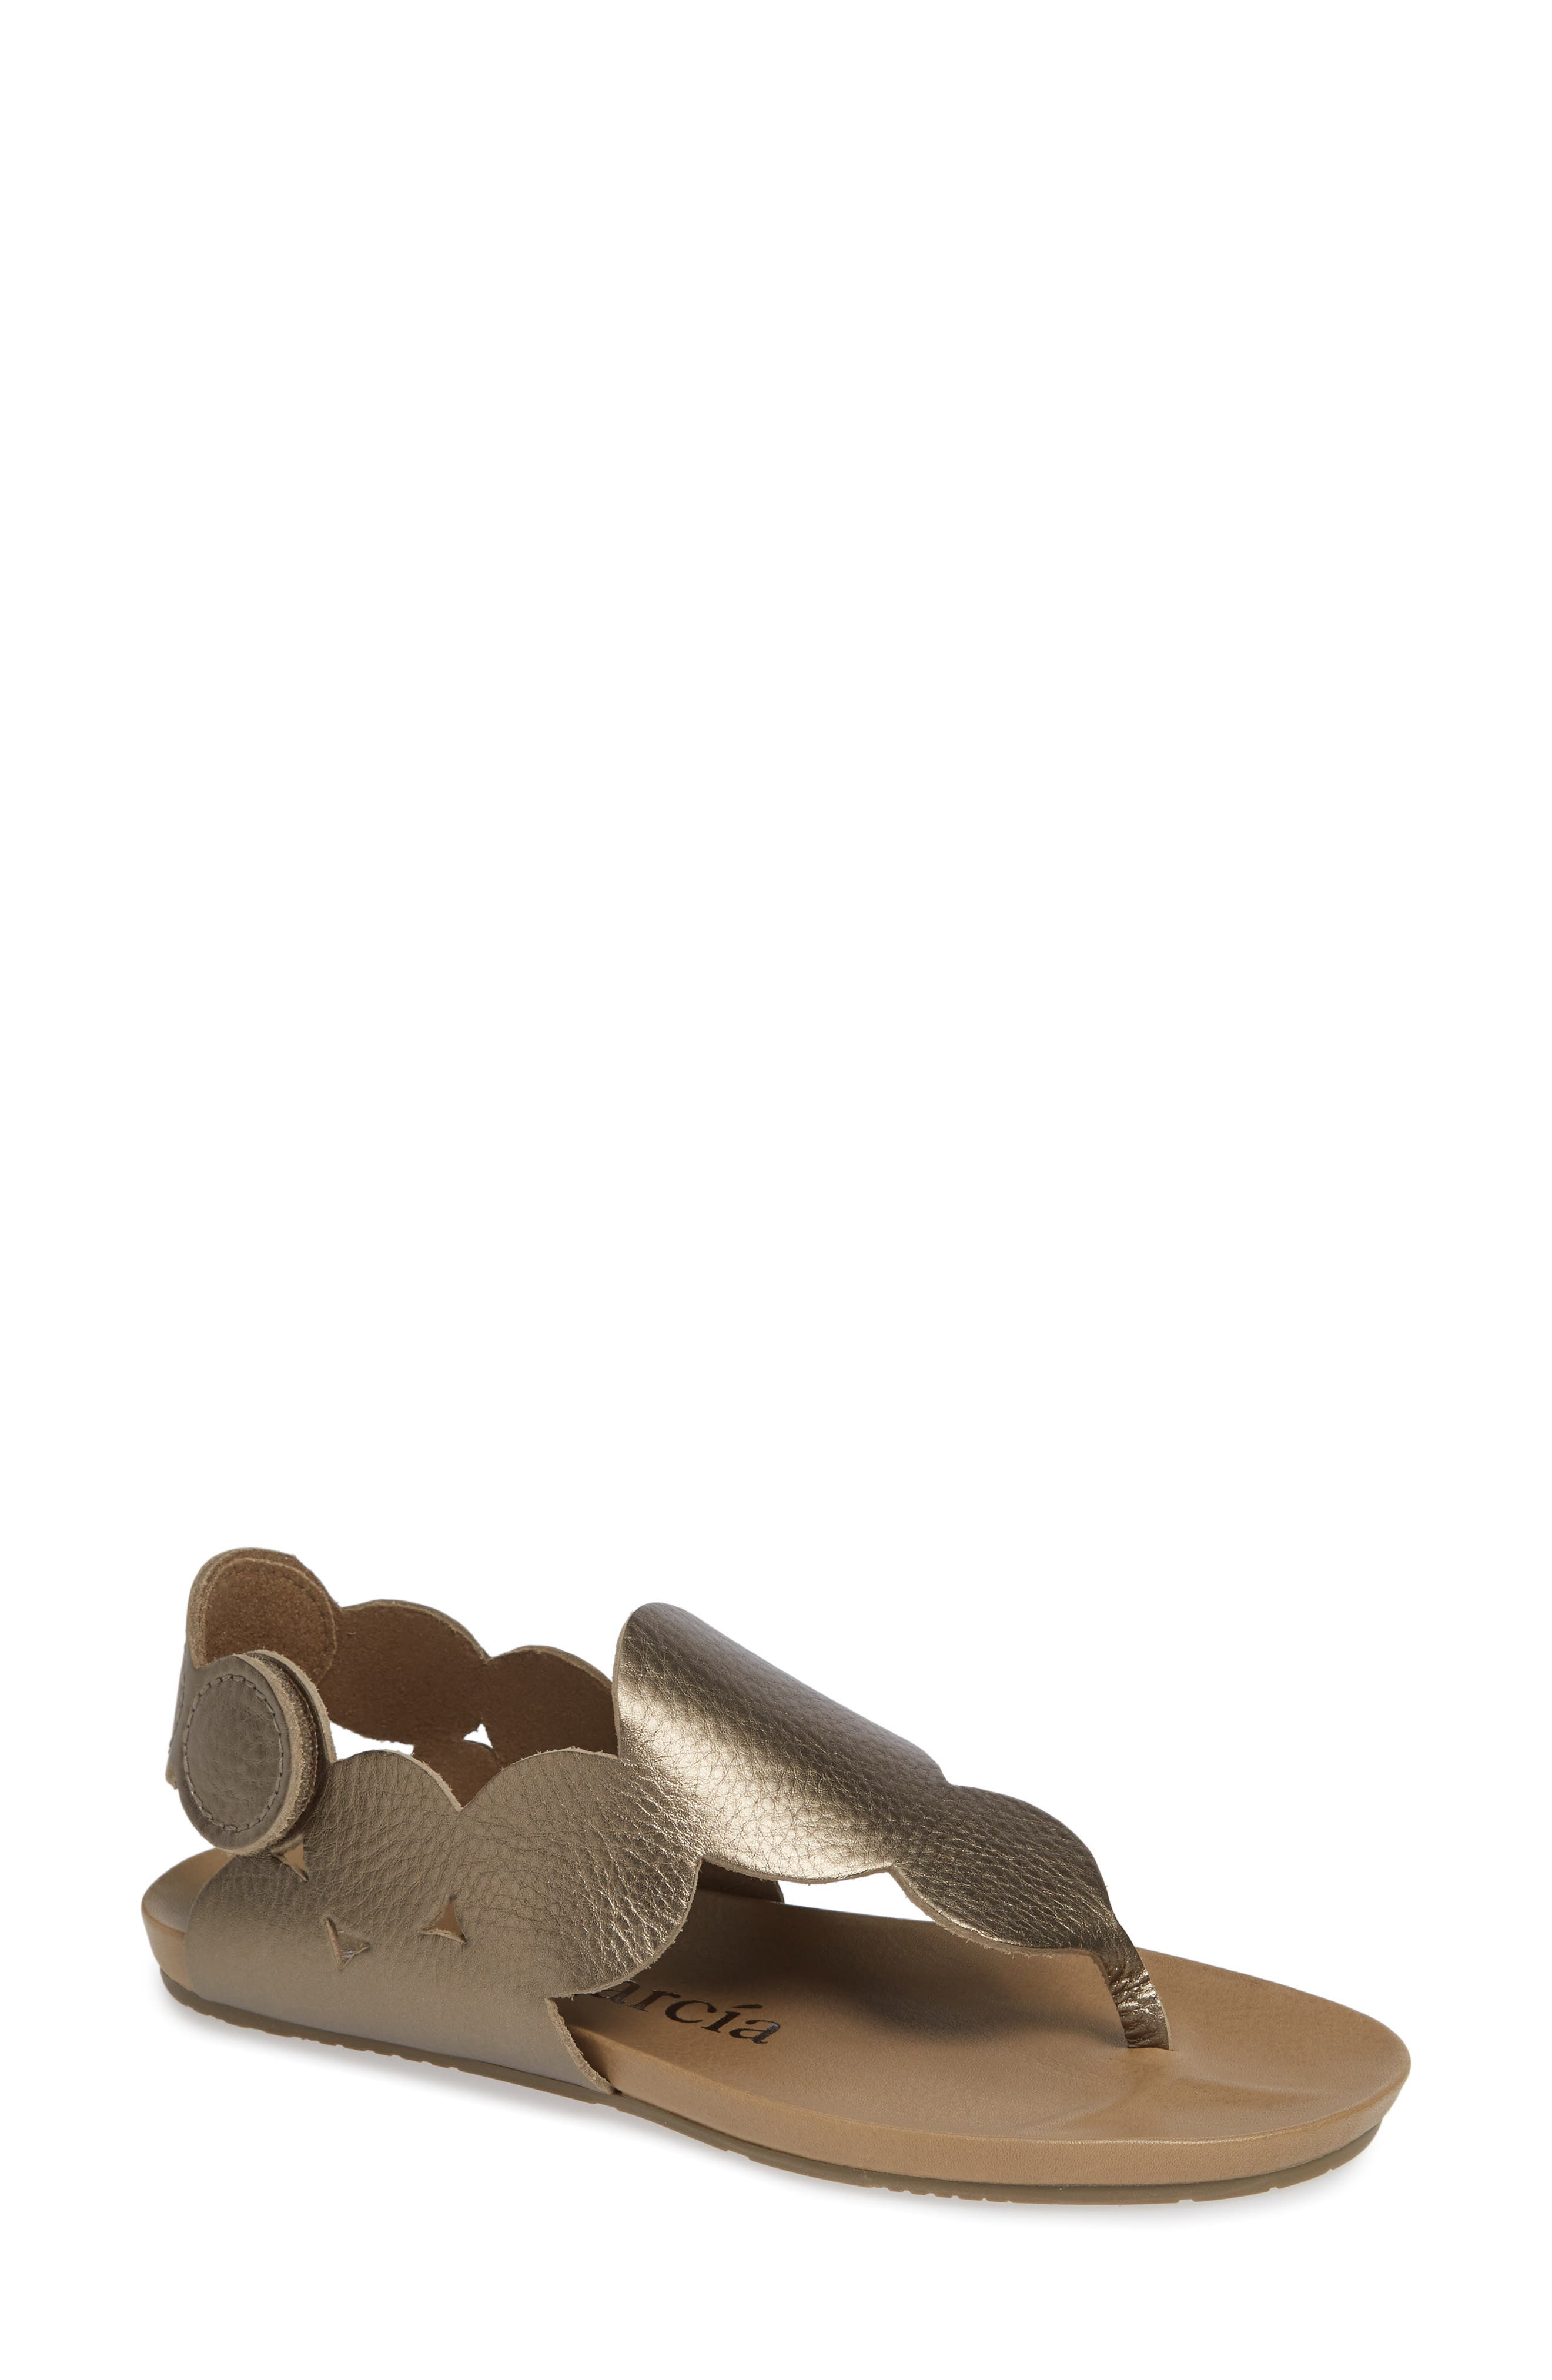 Jamee Sandal,                             Main thumbnail 1, color,                             BARK CERVO LAME